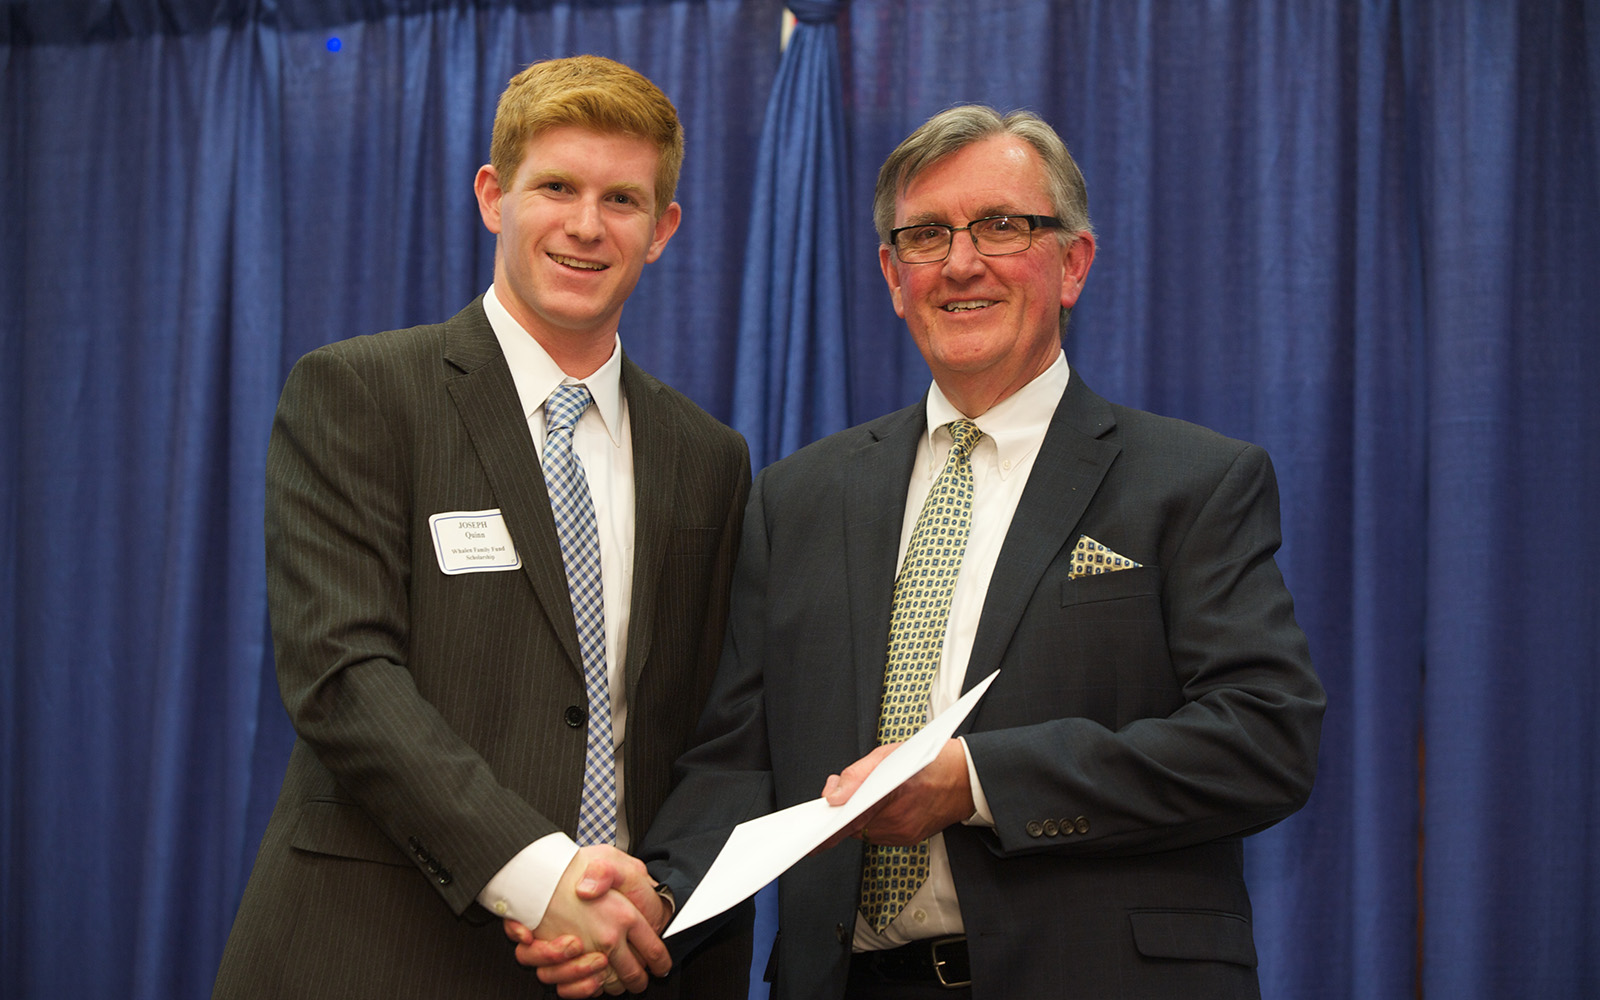 In this 2014 file photo, Professor Larry Gramling, then associate dean of Undergraduate Programs, poses with scholarship recipient Joseph Quinn during the Accounting Honors Banquet. (Kim Bova/UConn School of Business)